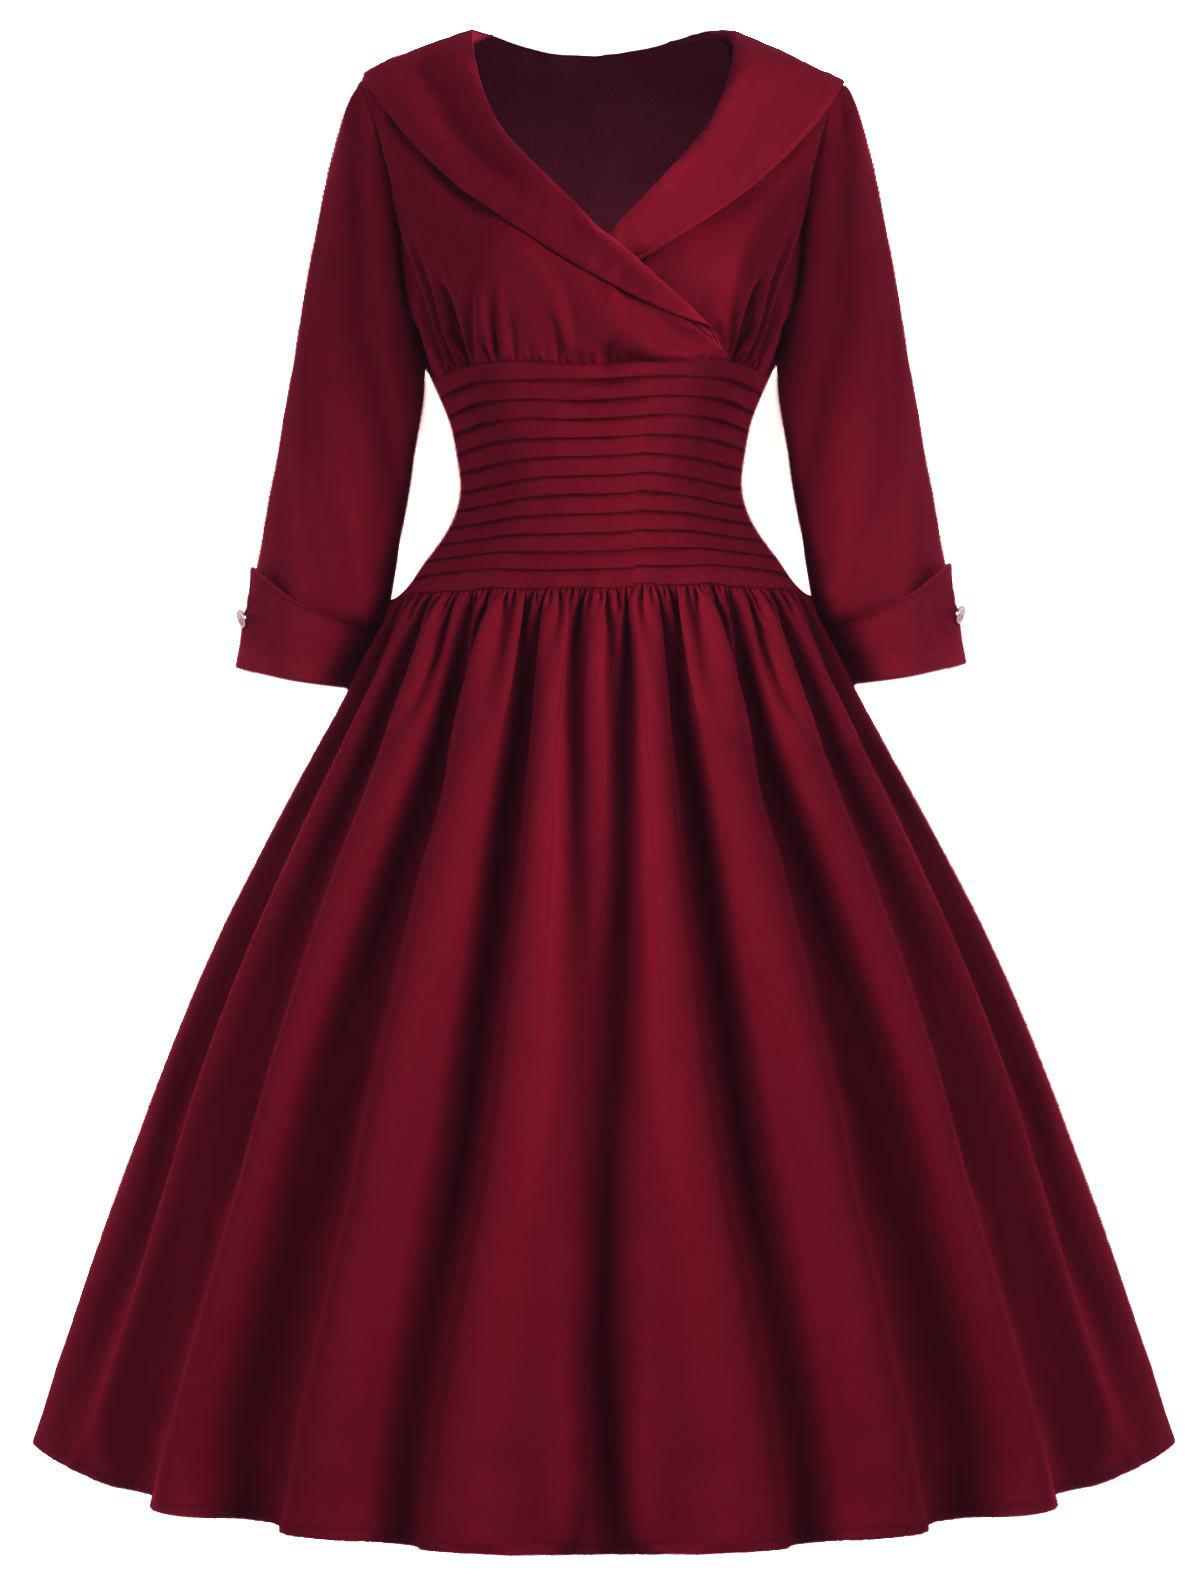 Vintage Women's Turn-Down Collar 3/4 Sleeve Slimming Dress - WINE RED L